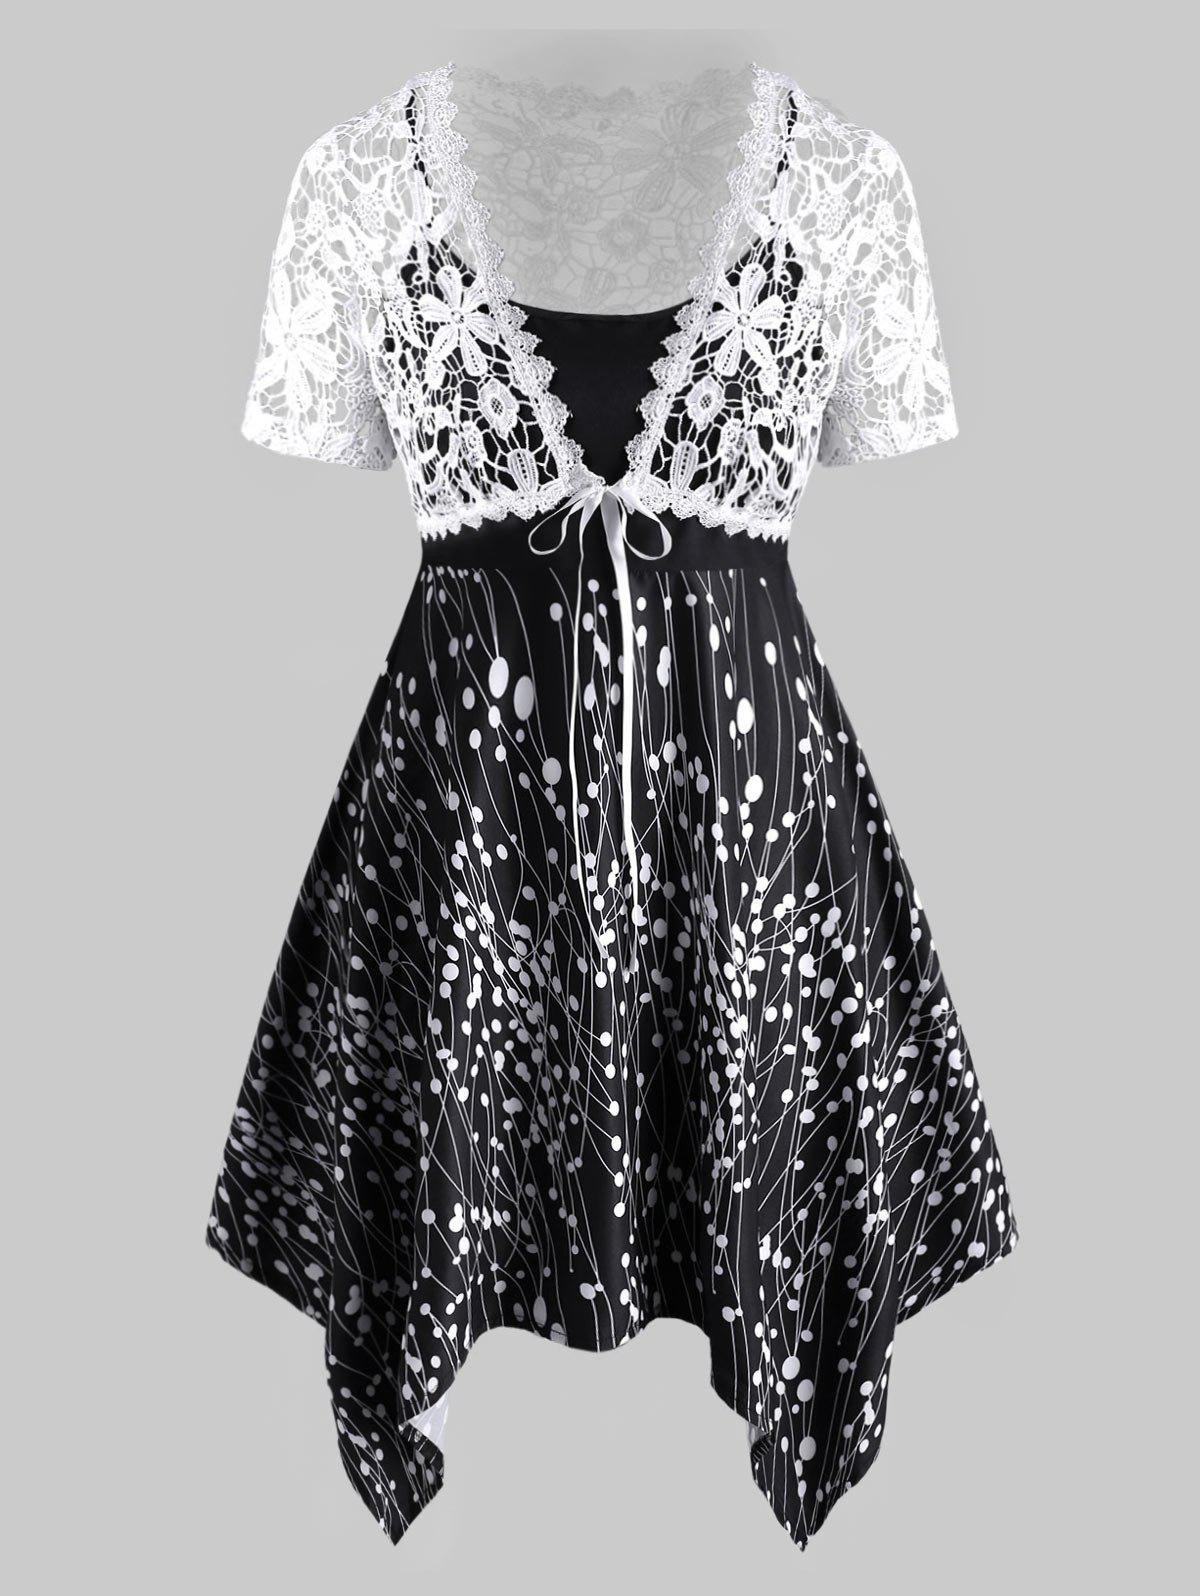 Plus Size Printed Handkerchief Cami Dress And Lace Knotted Top Set - BLACK 2X